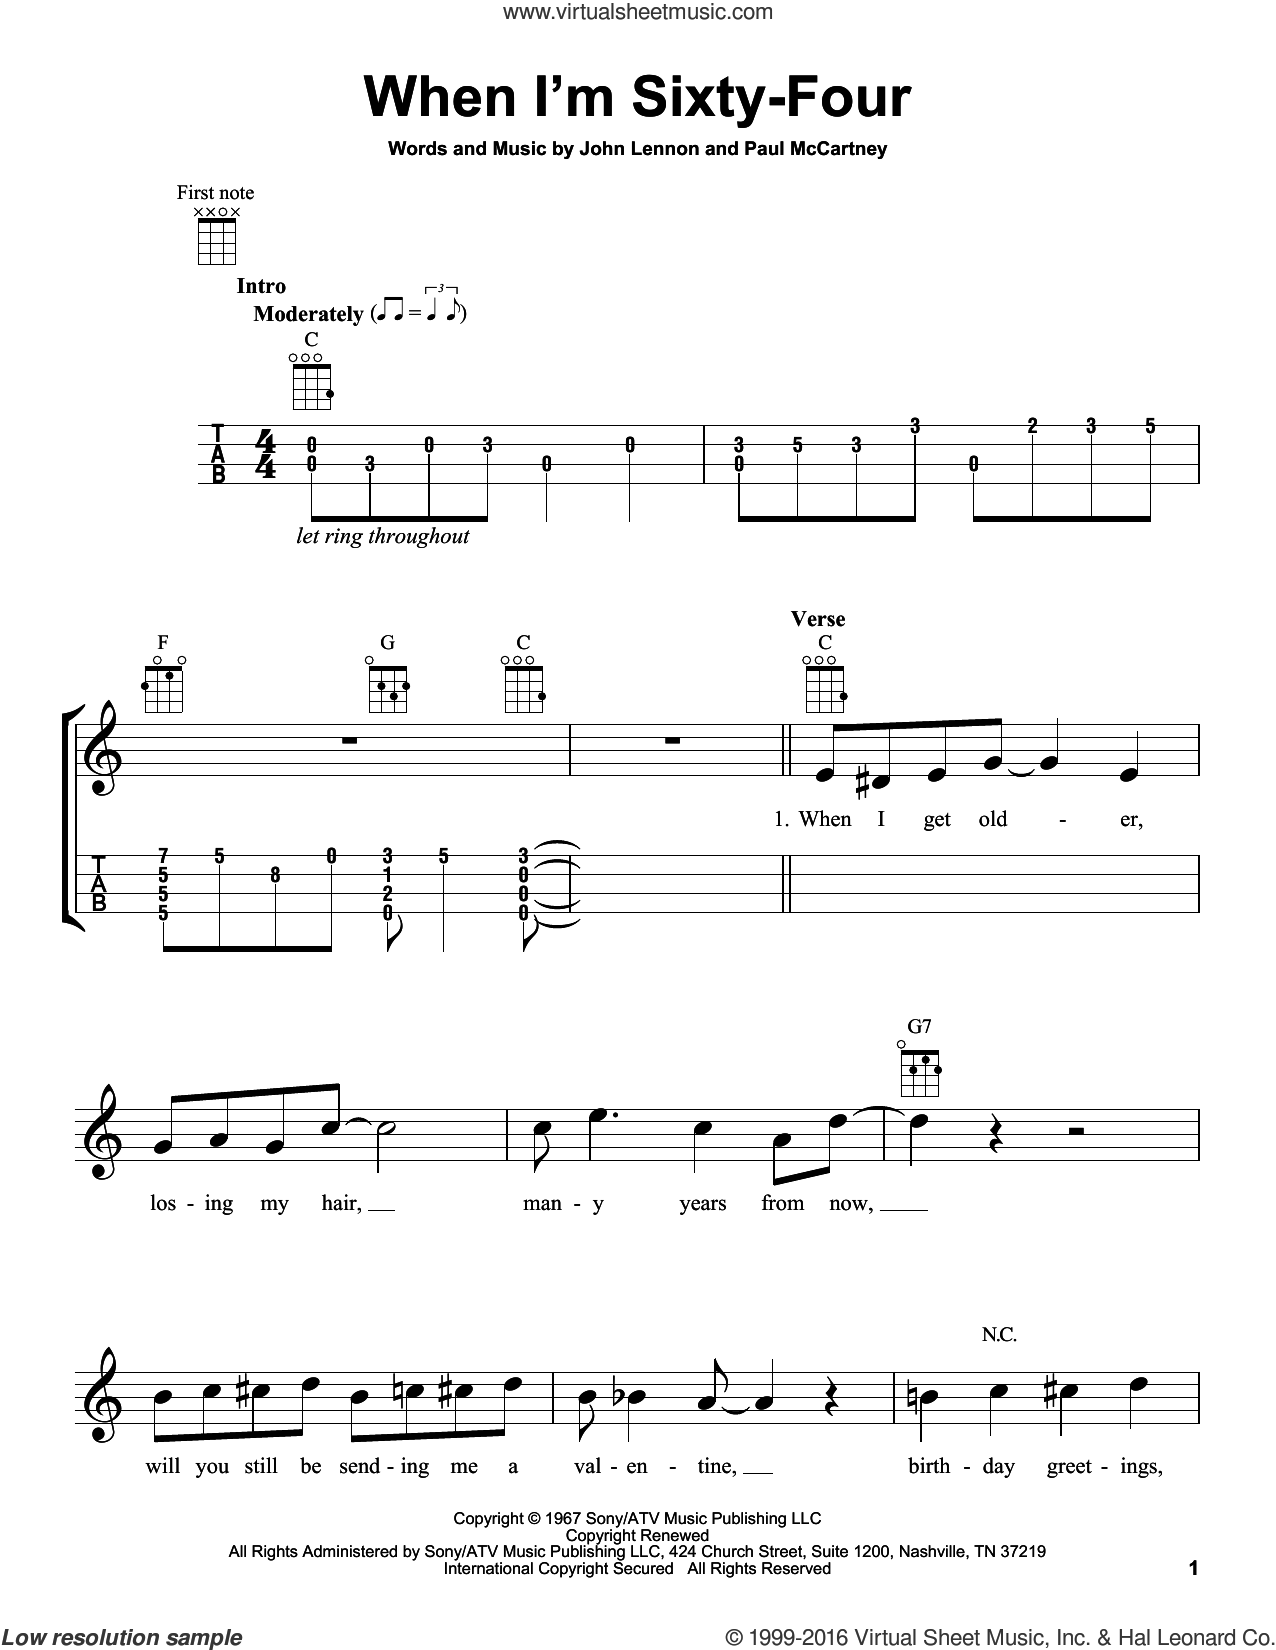 When I'm Sixty-Four sheet music for ukulele by The Beatles, John Lennon and Paul McCartney, intermediate skill level